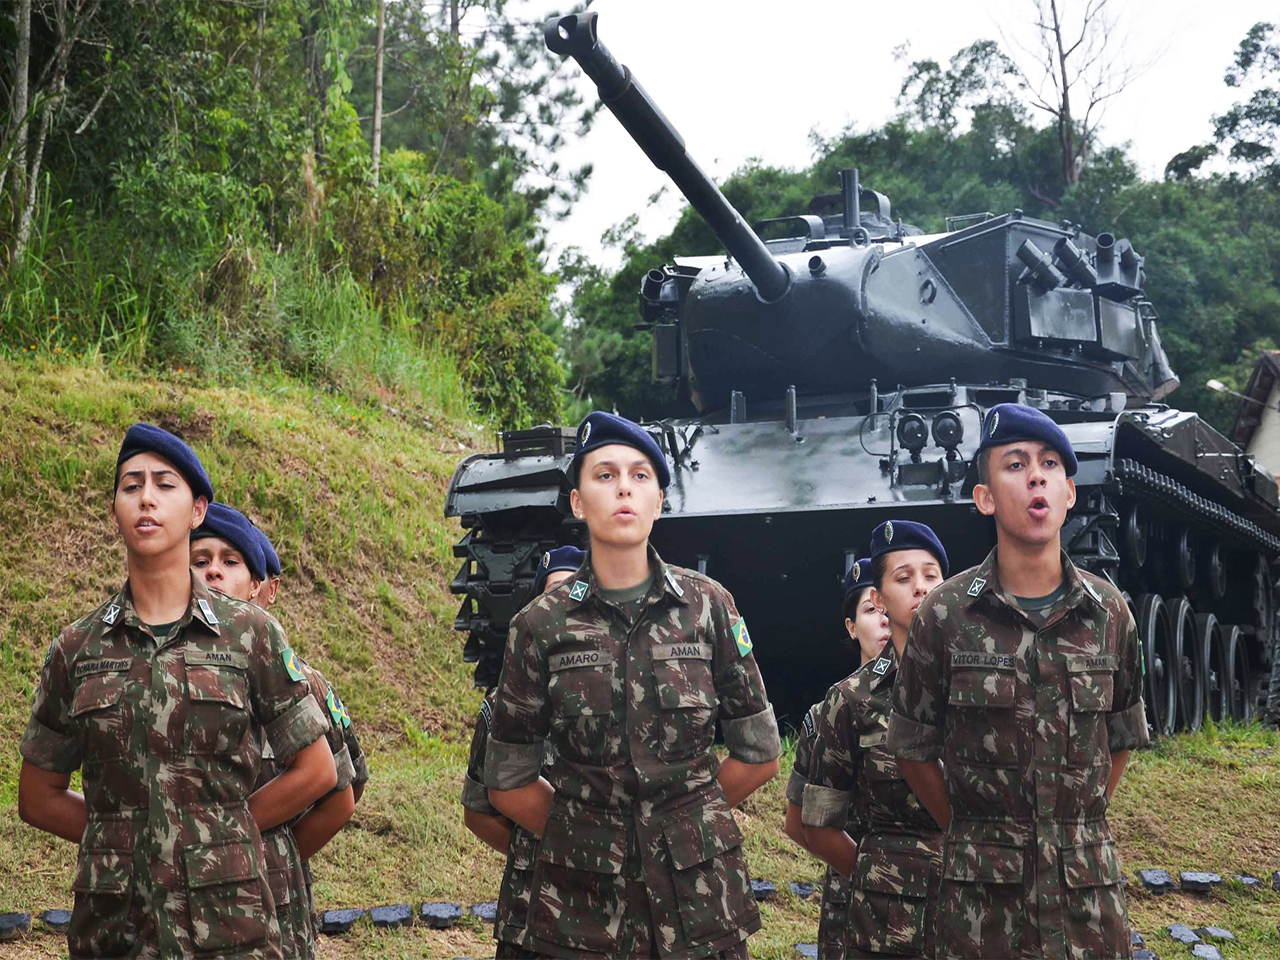 Brazilian Army's First Class of Female Combatants Graduates in 2021